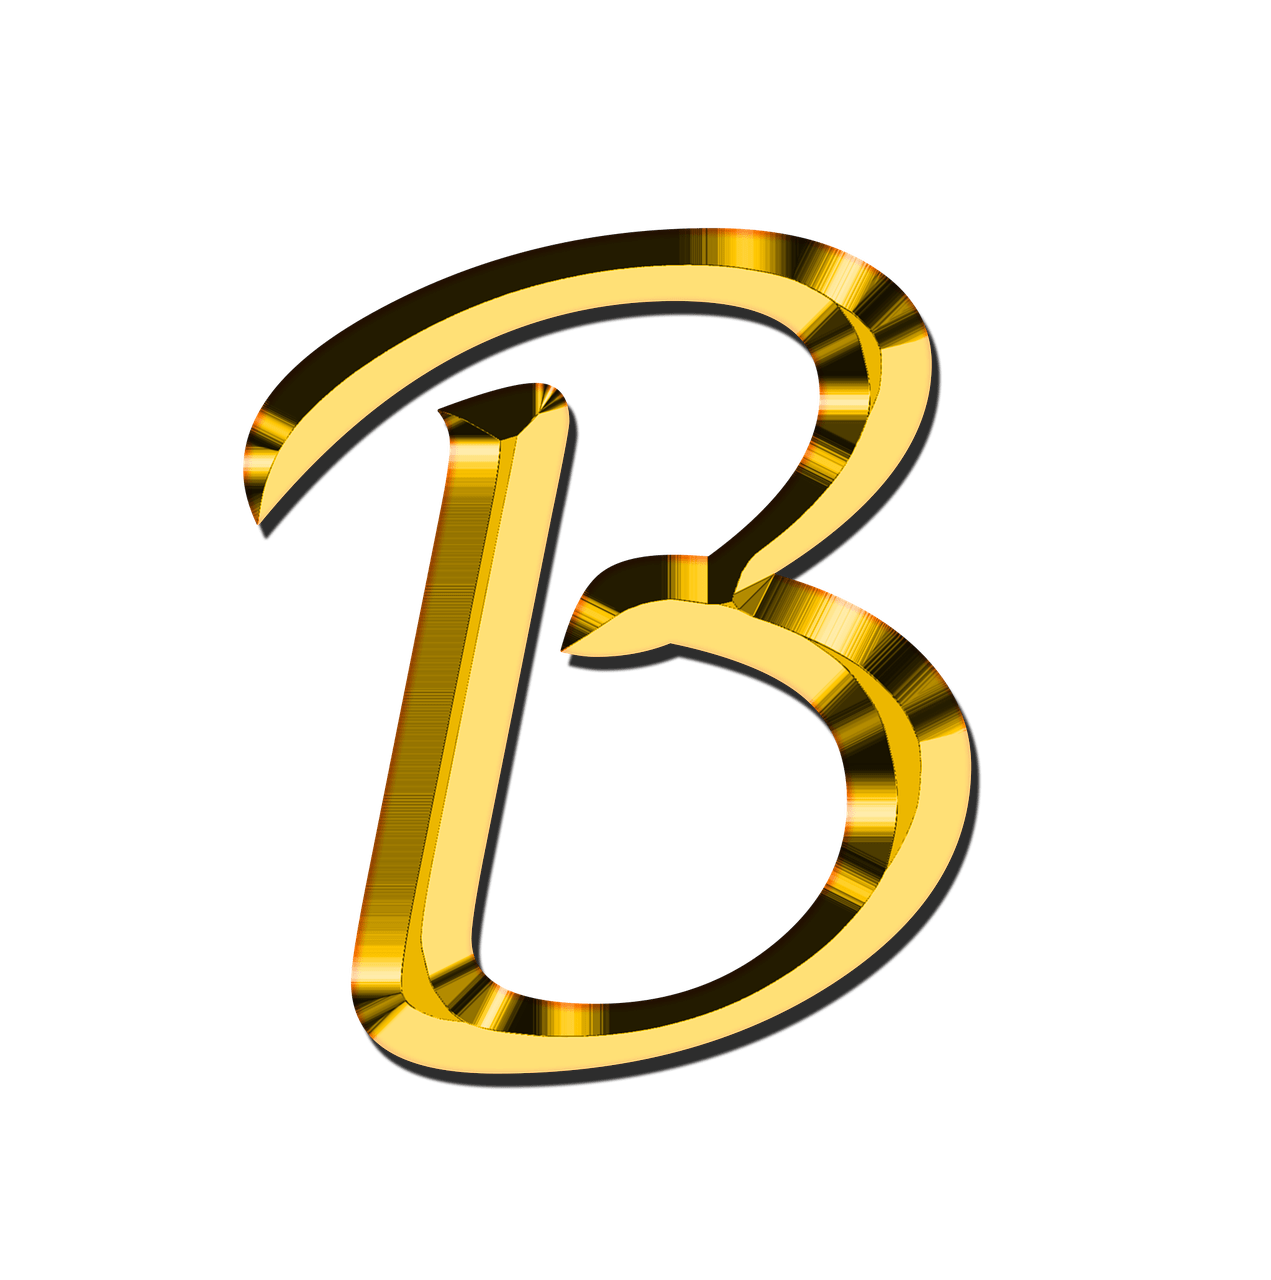 Letter b png. Alphabet transparent images stickpng